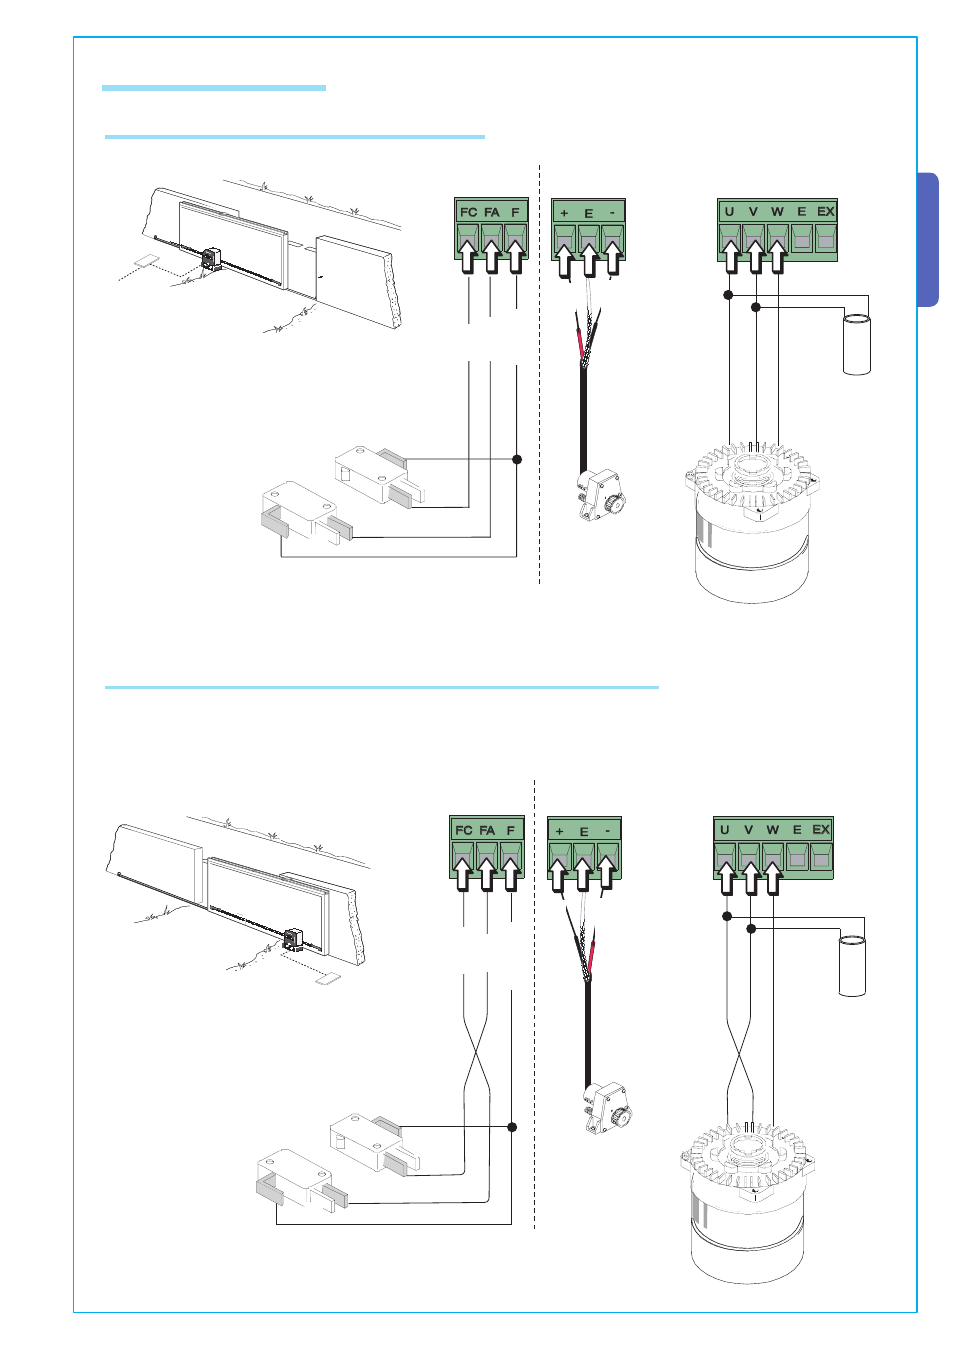 English 3 Electrical Connections Connection For Gear Motor Limit Switch Schematic Or Encoder Came Bke 2200 Kit User Manual Page 9 22